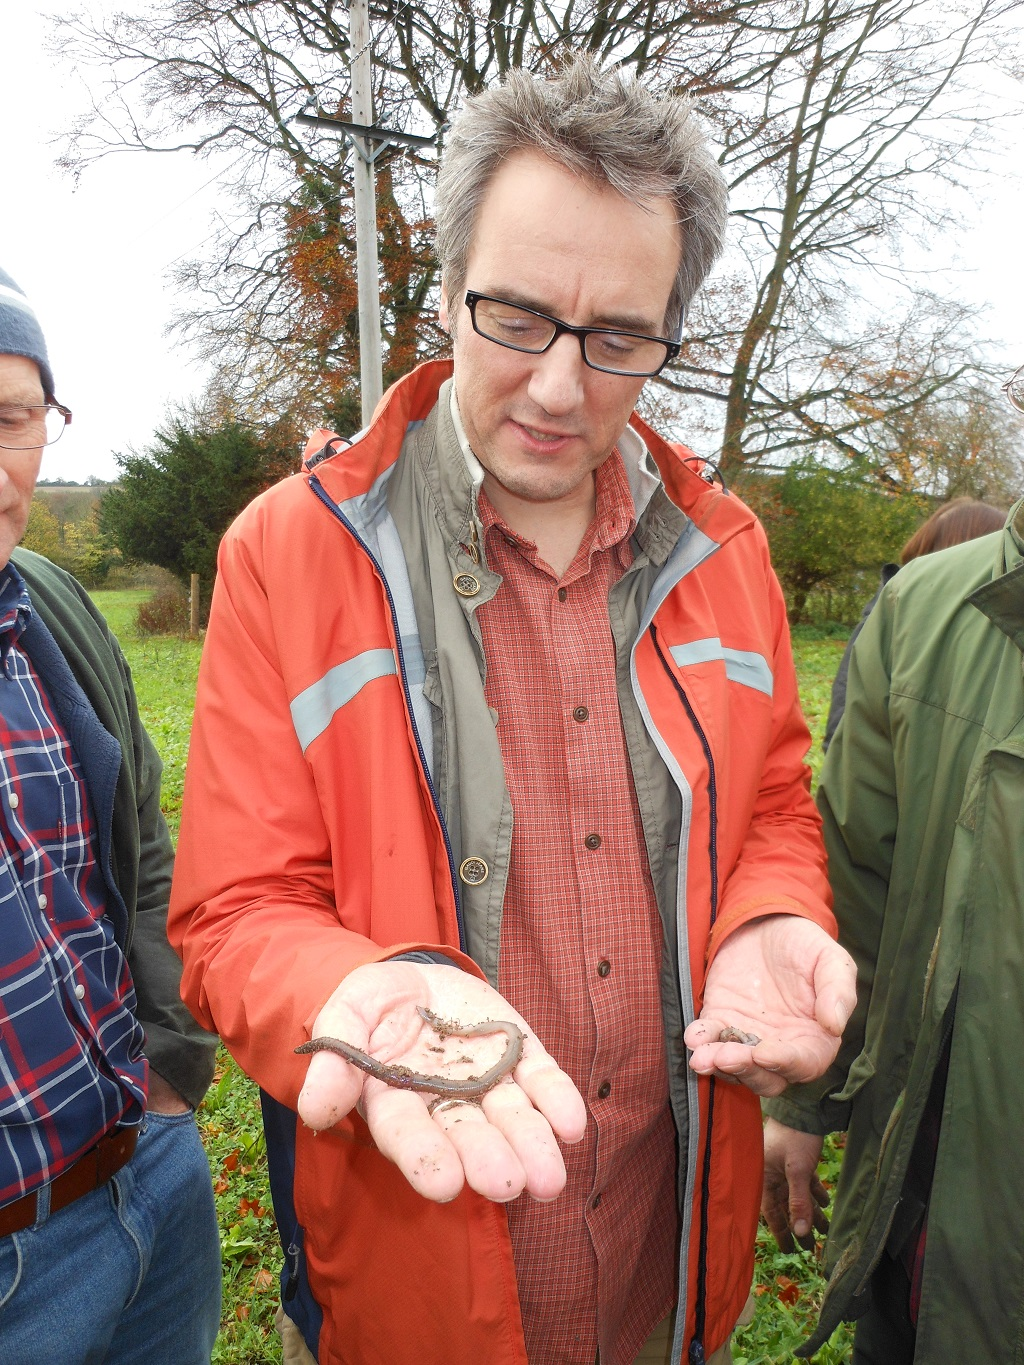 Dr David Jones (The British Museum) explaining speaking to farmers at a CSF event in Wiltshire how earth worms play a significant role in keeping soils healthy.